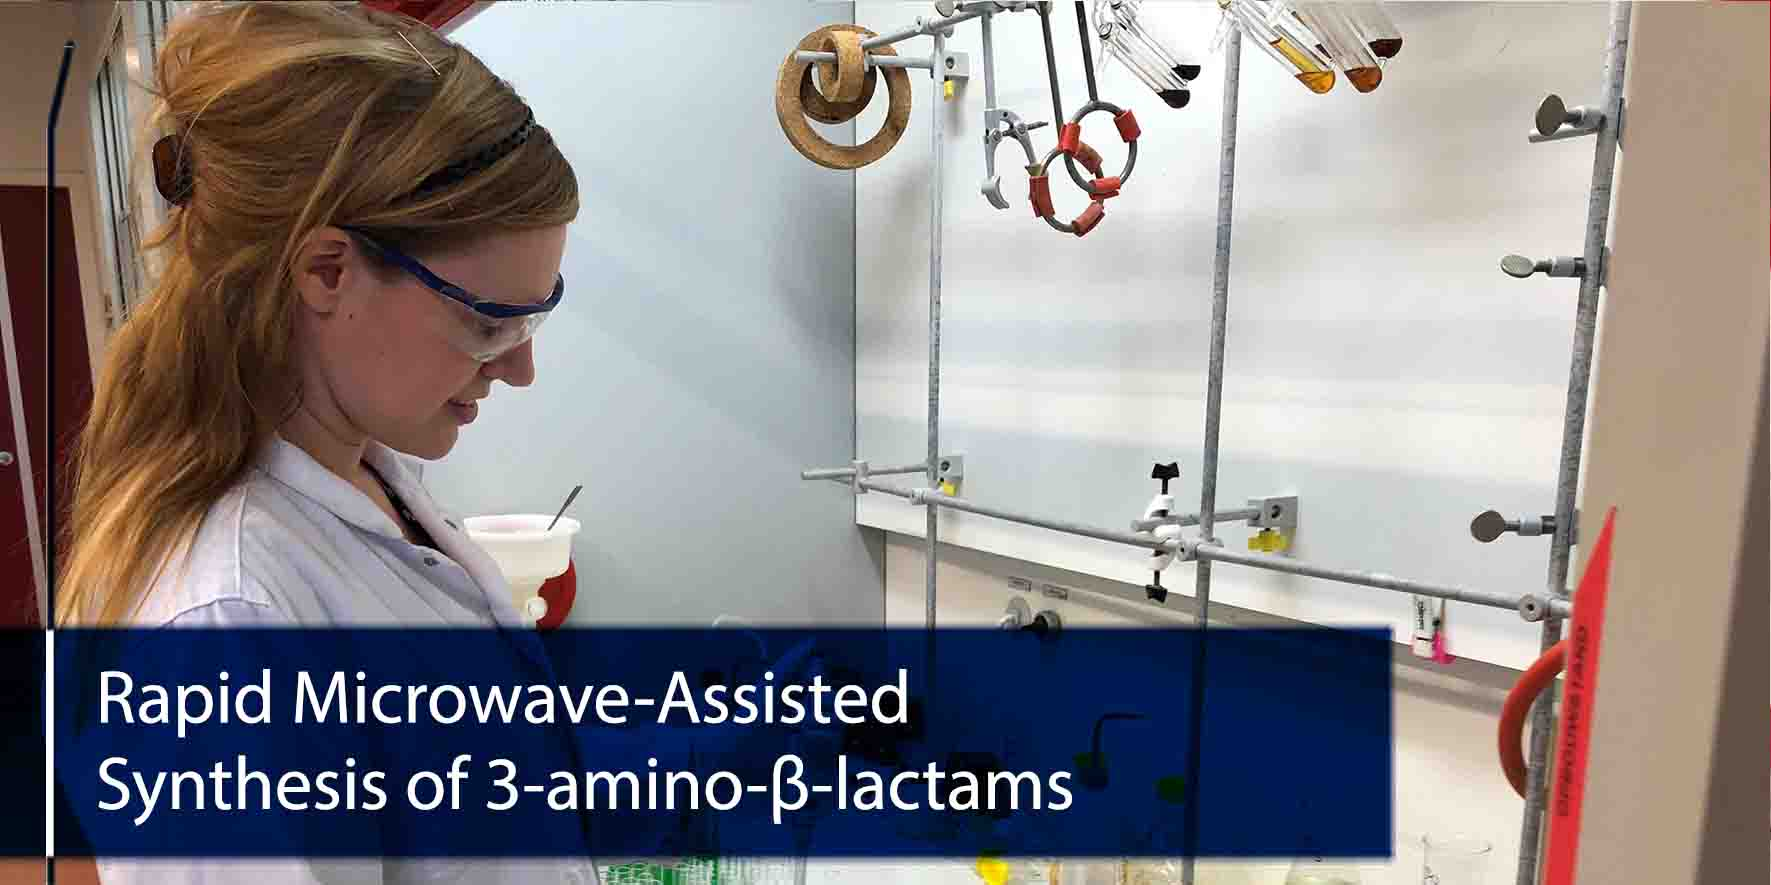 Microwave assisted synthesis 1